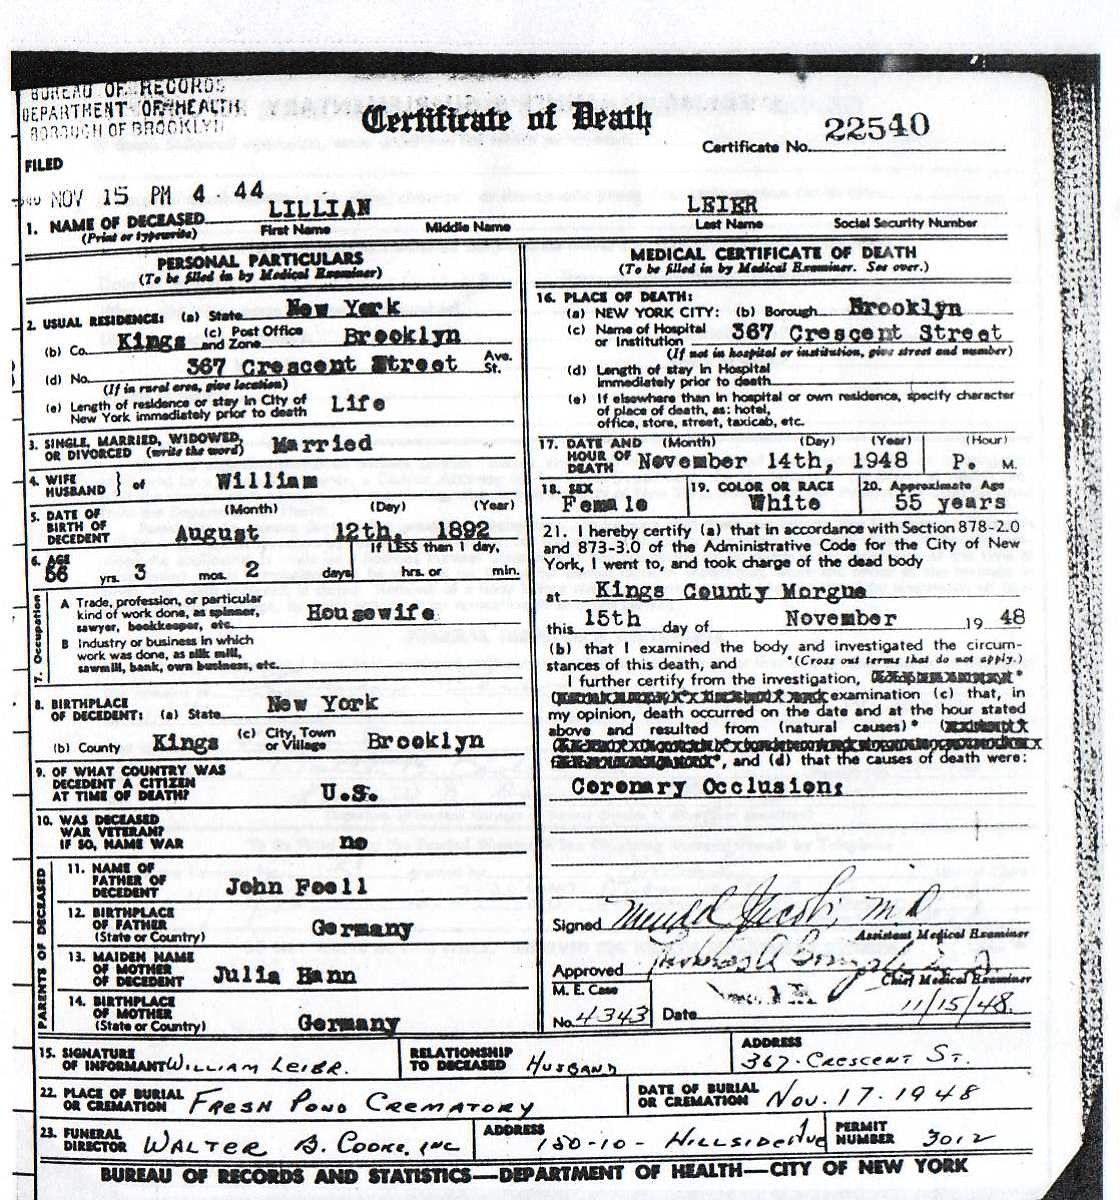 Lillian Fall Leier's Certificate of Death